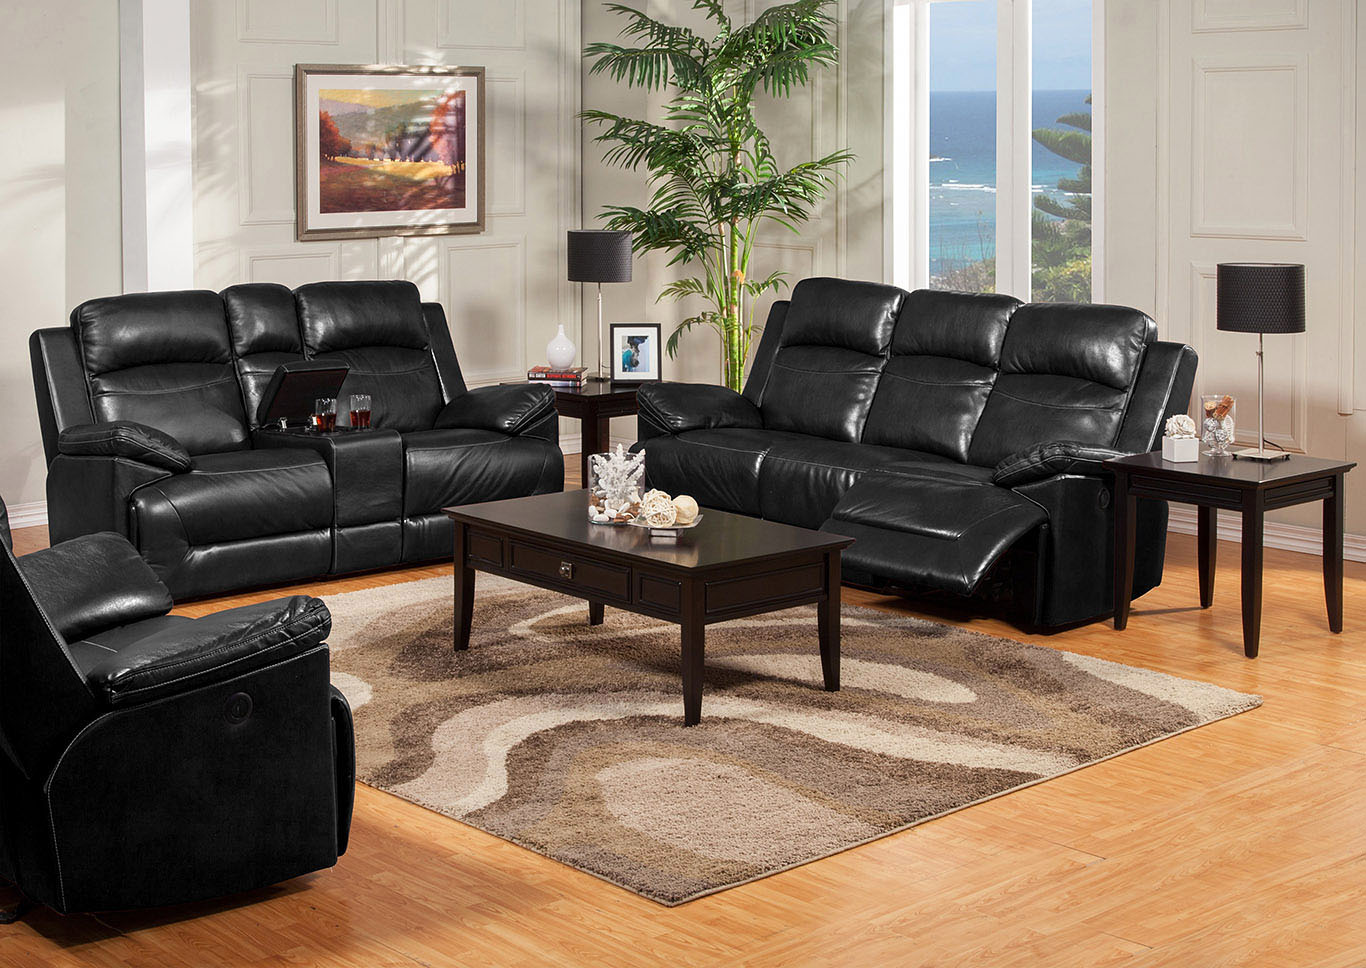 Great Rooms Furniture and Mattresses Cortez Black Leather Dual ...